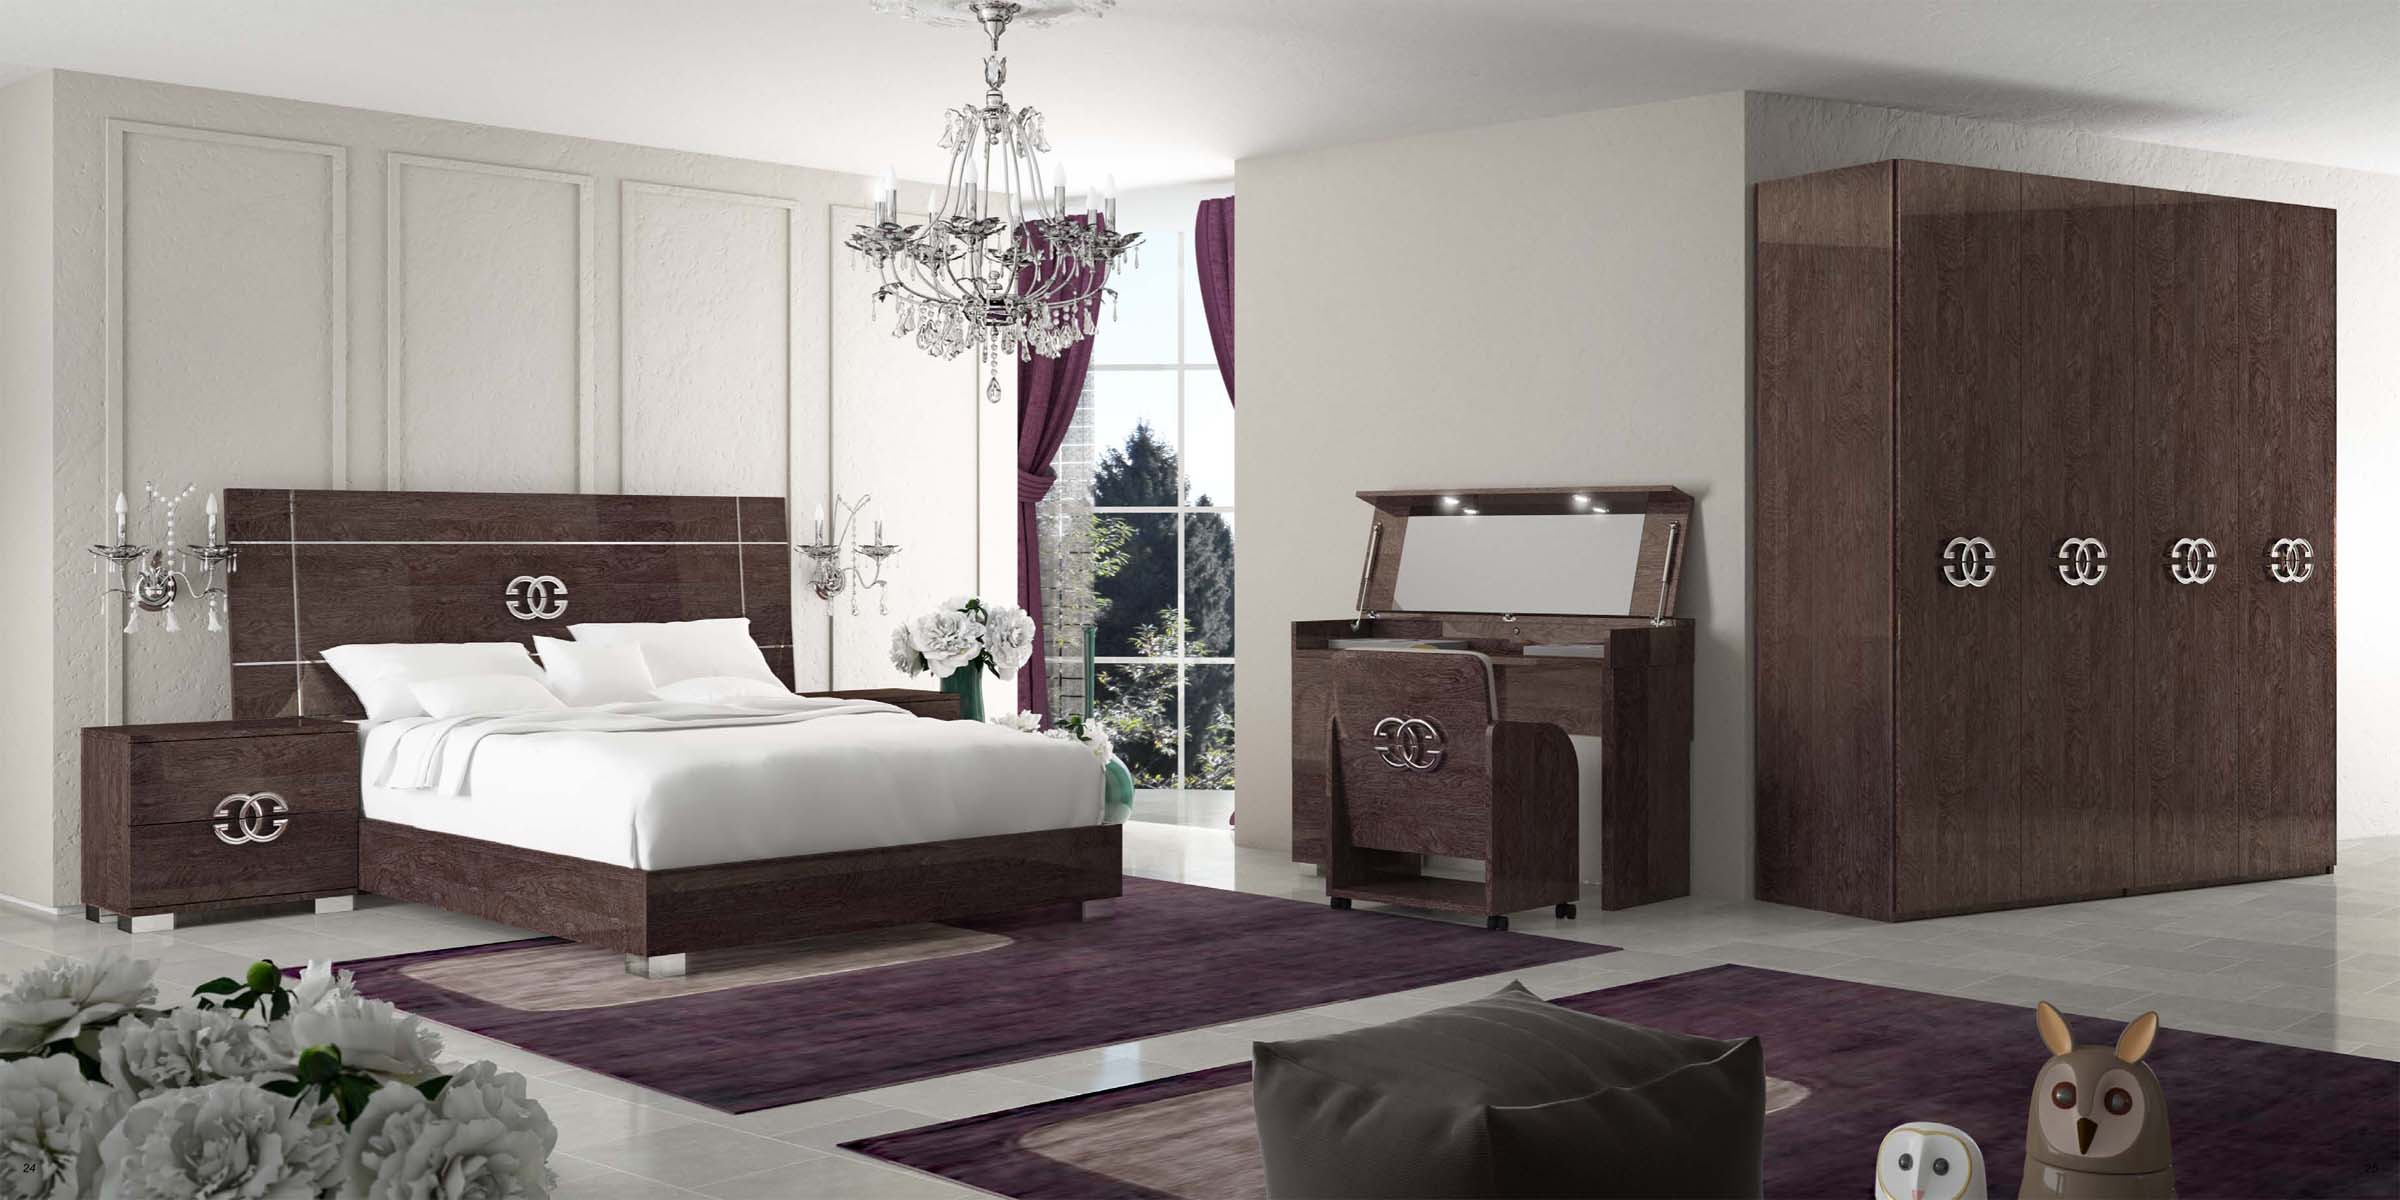 Prestige Classic Modern Bedrooms Bedroom Furniture within 11 Smart Designs of How to Improve Pics Of Modern Bedrooms